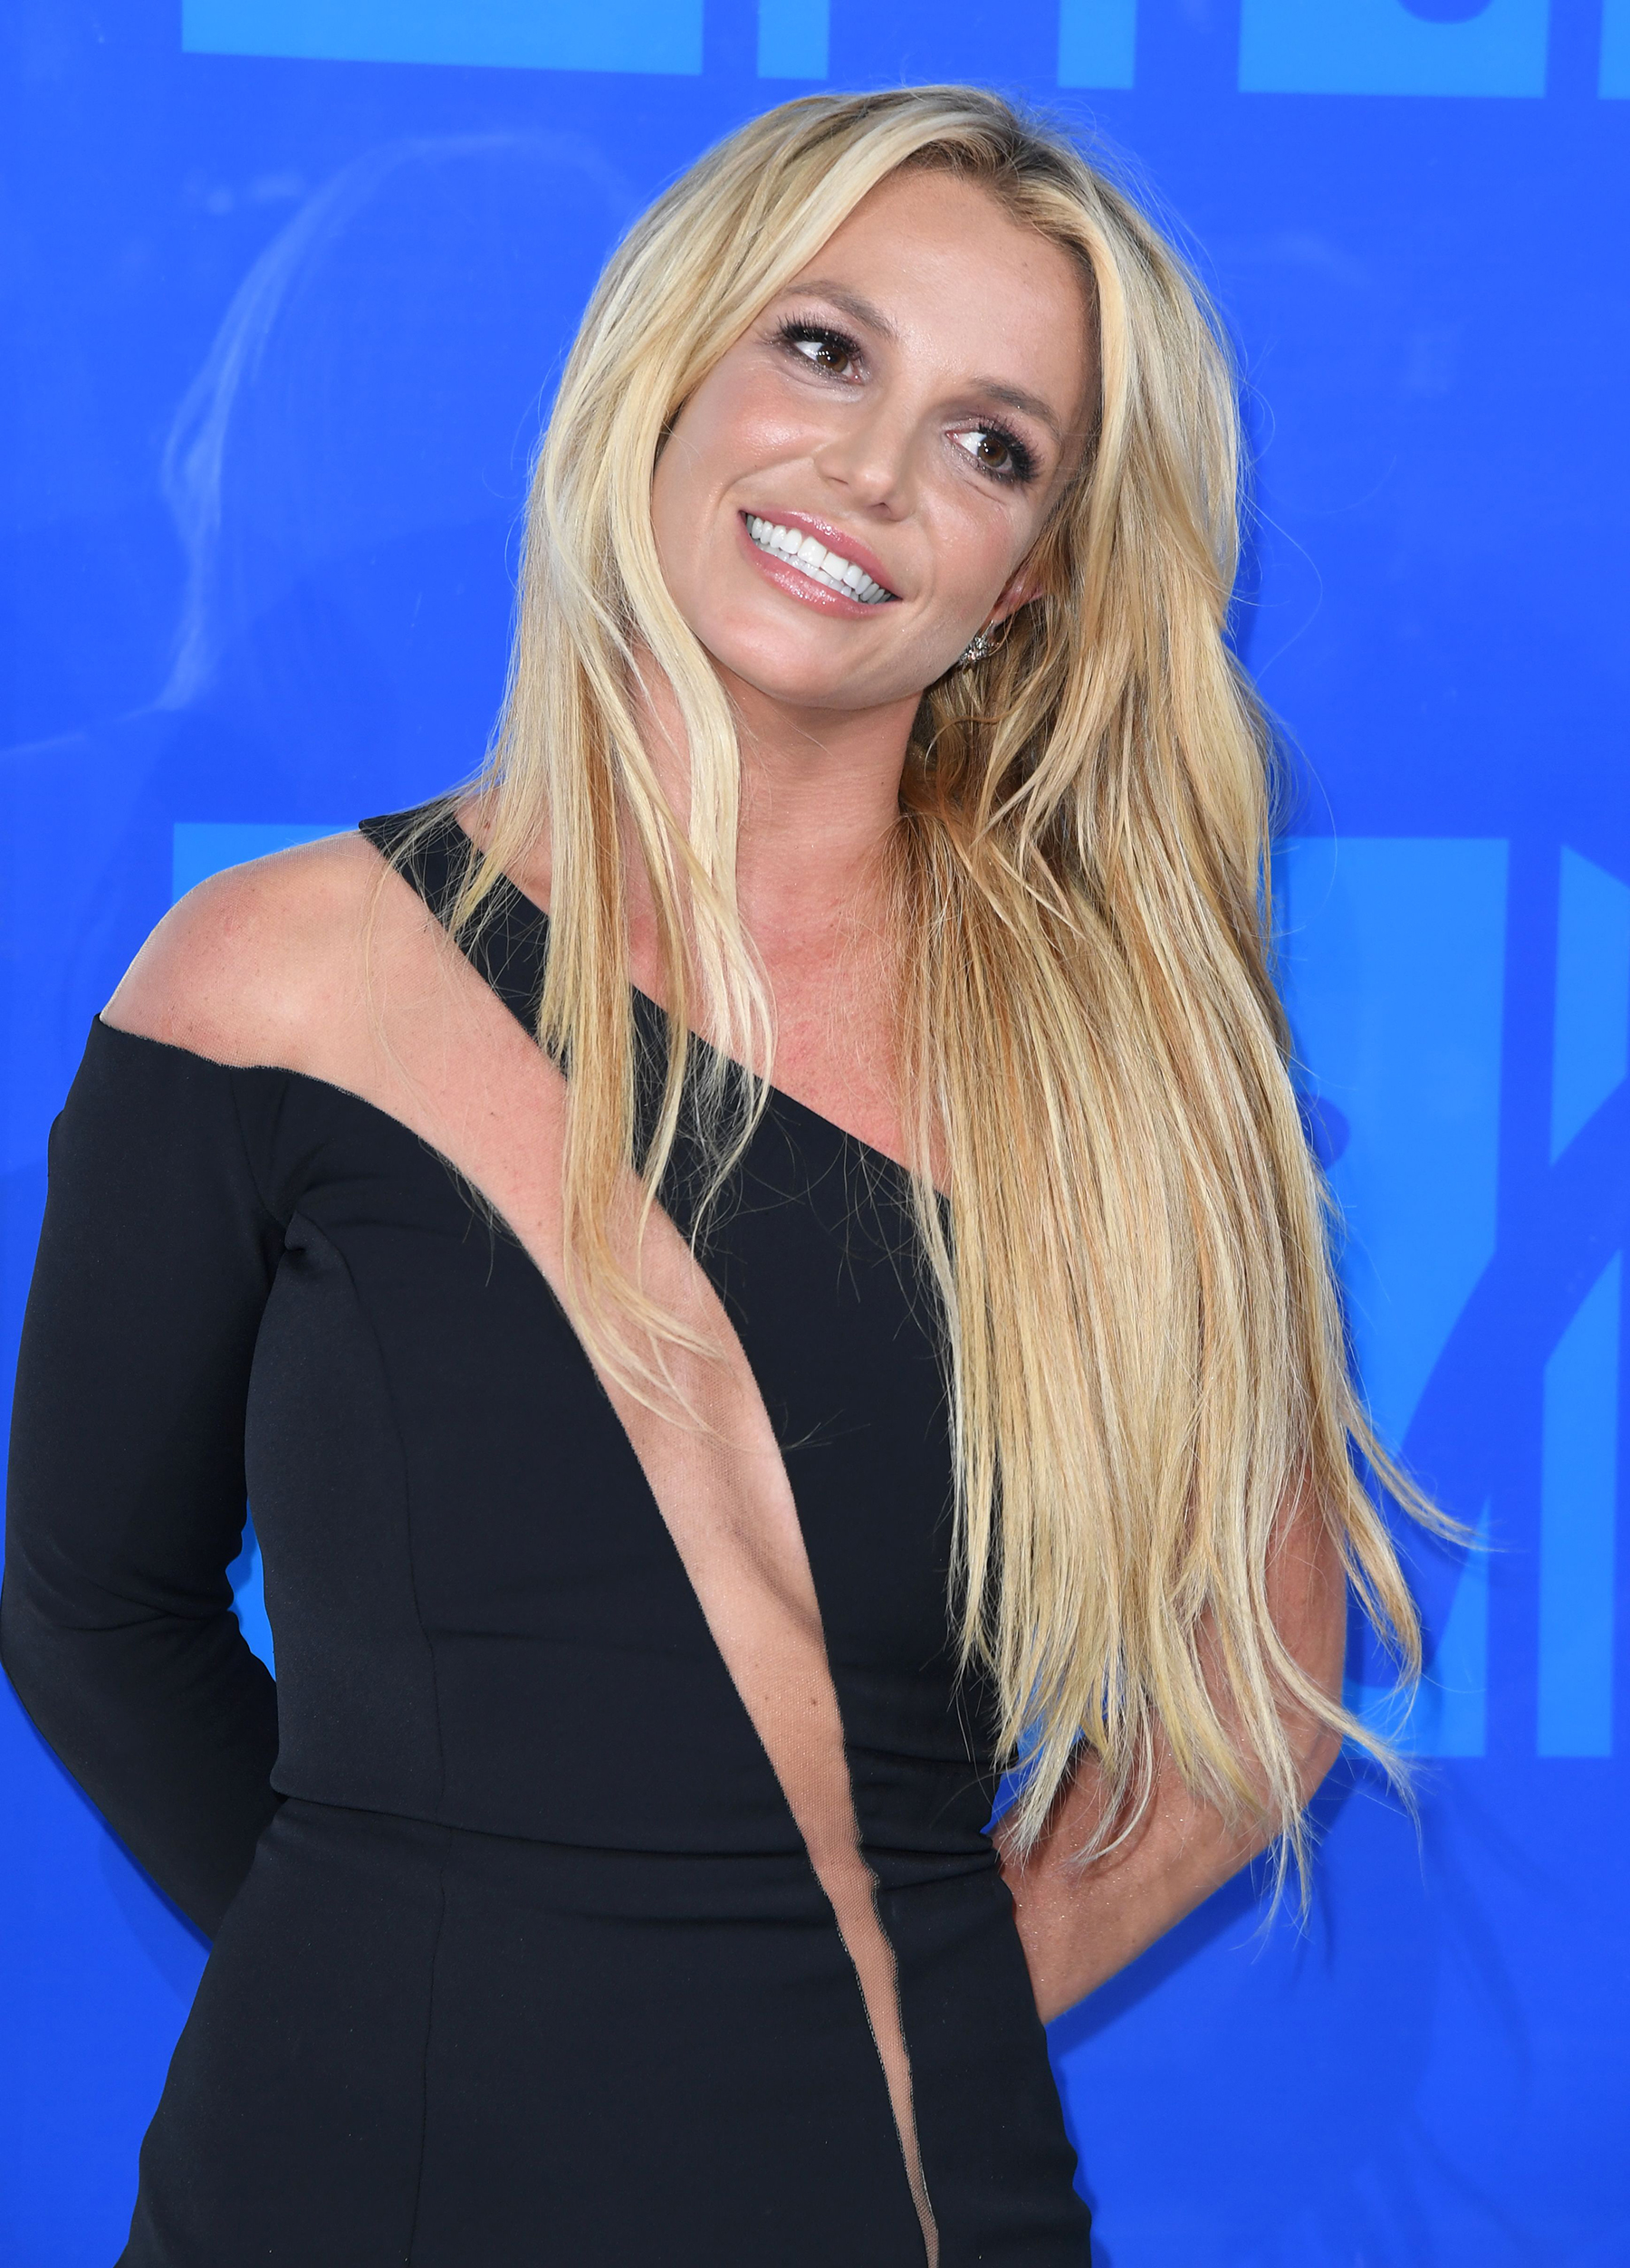 Britney Spears Raised More Than $1 Million for aNevada Children's Cancer Facility